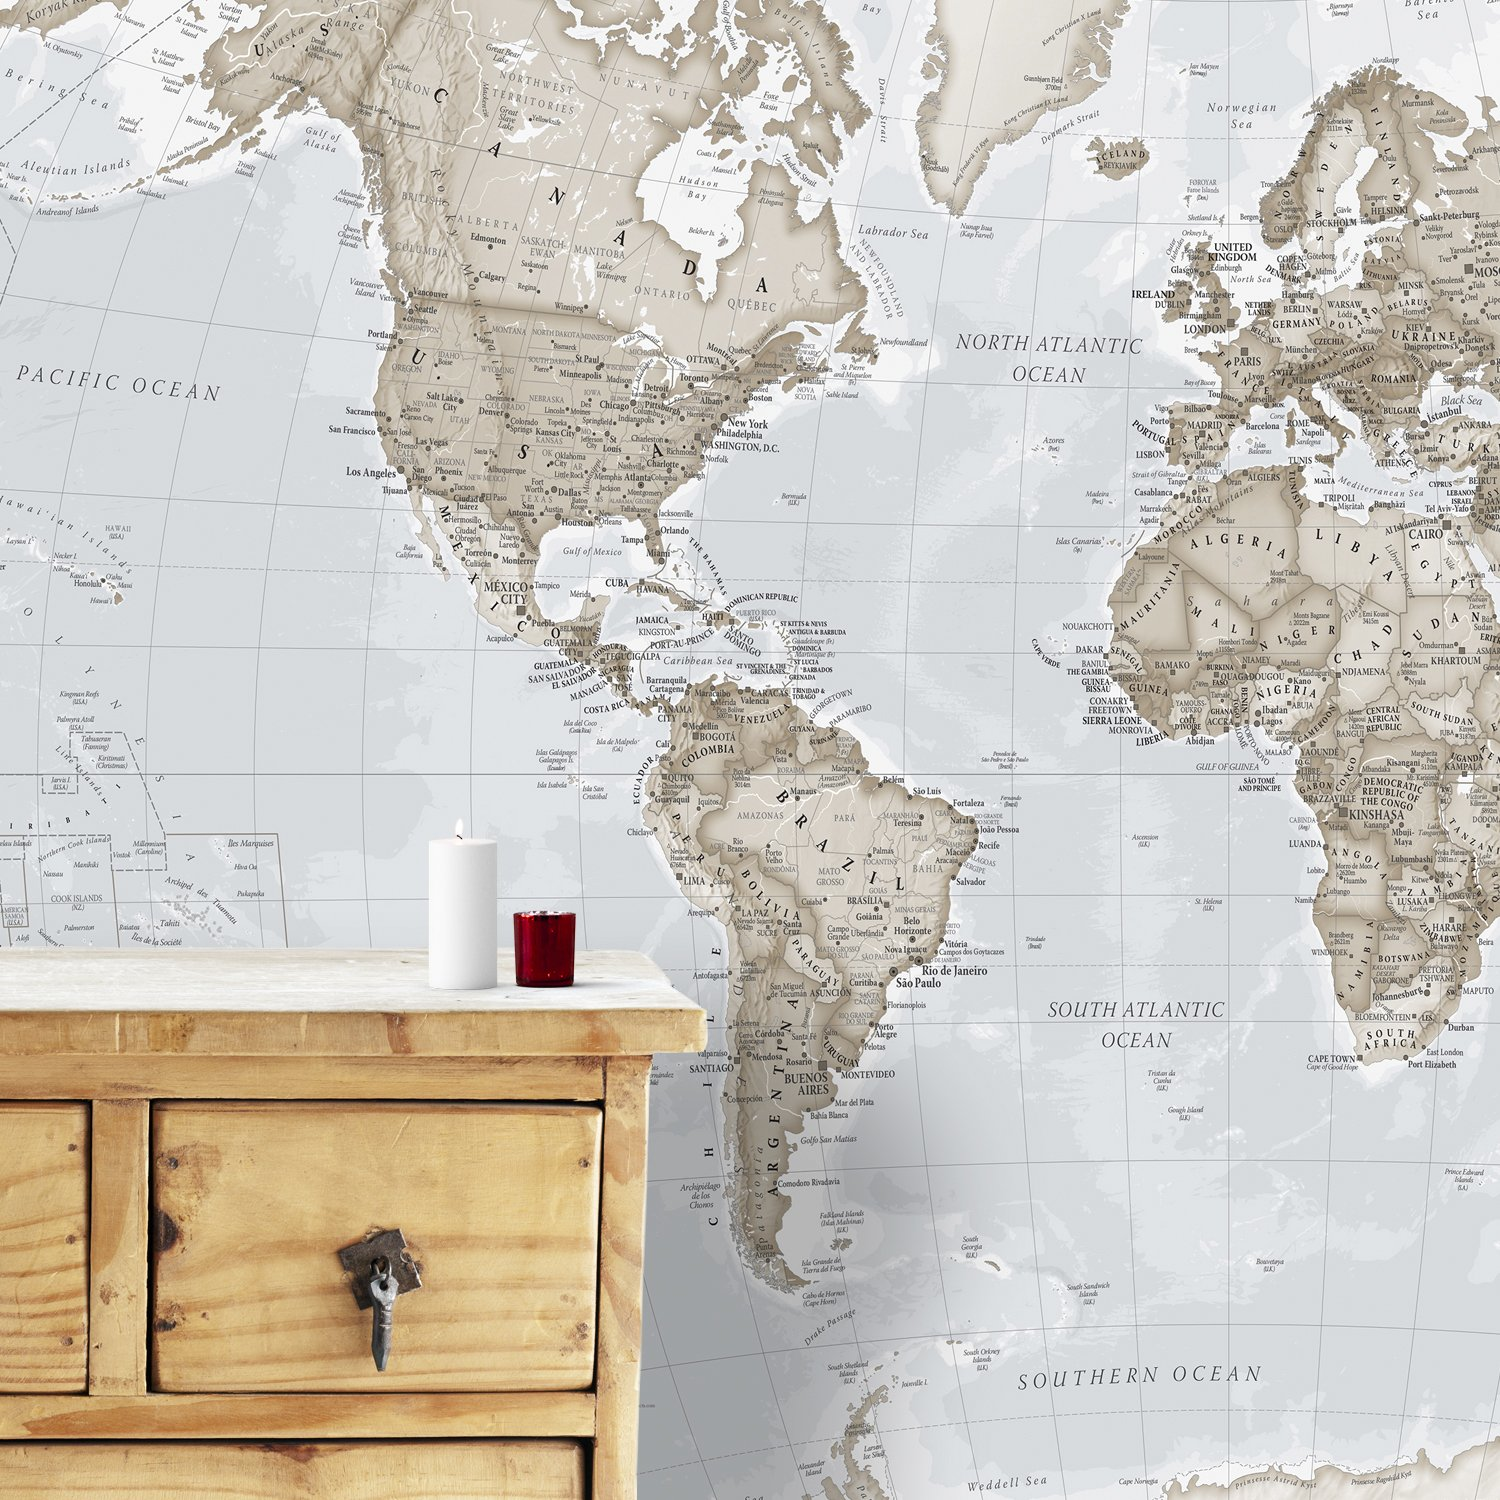 Giant World Map Mural – Decorazione da parete – 232 cm (W) x 158 cm (H), panna Maps International